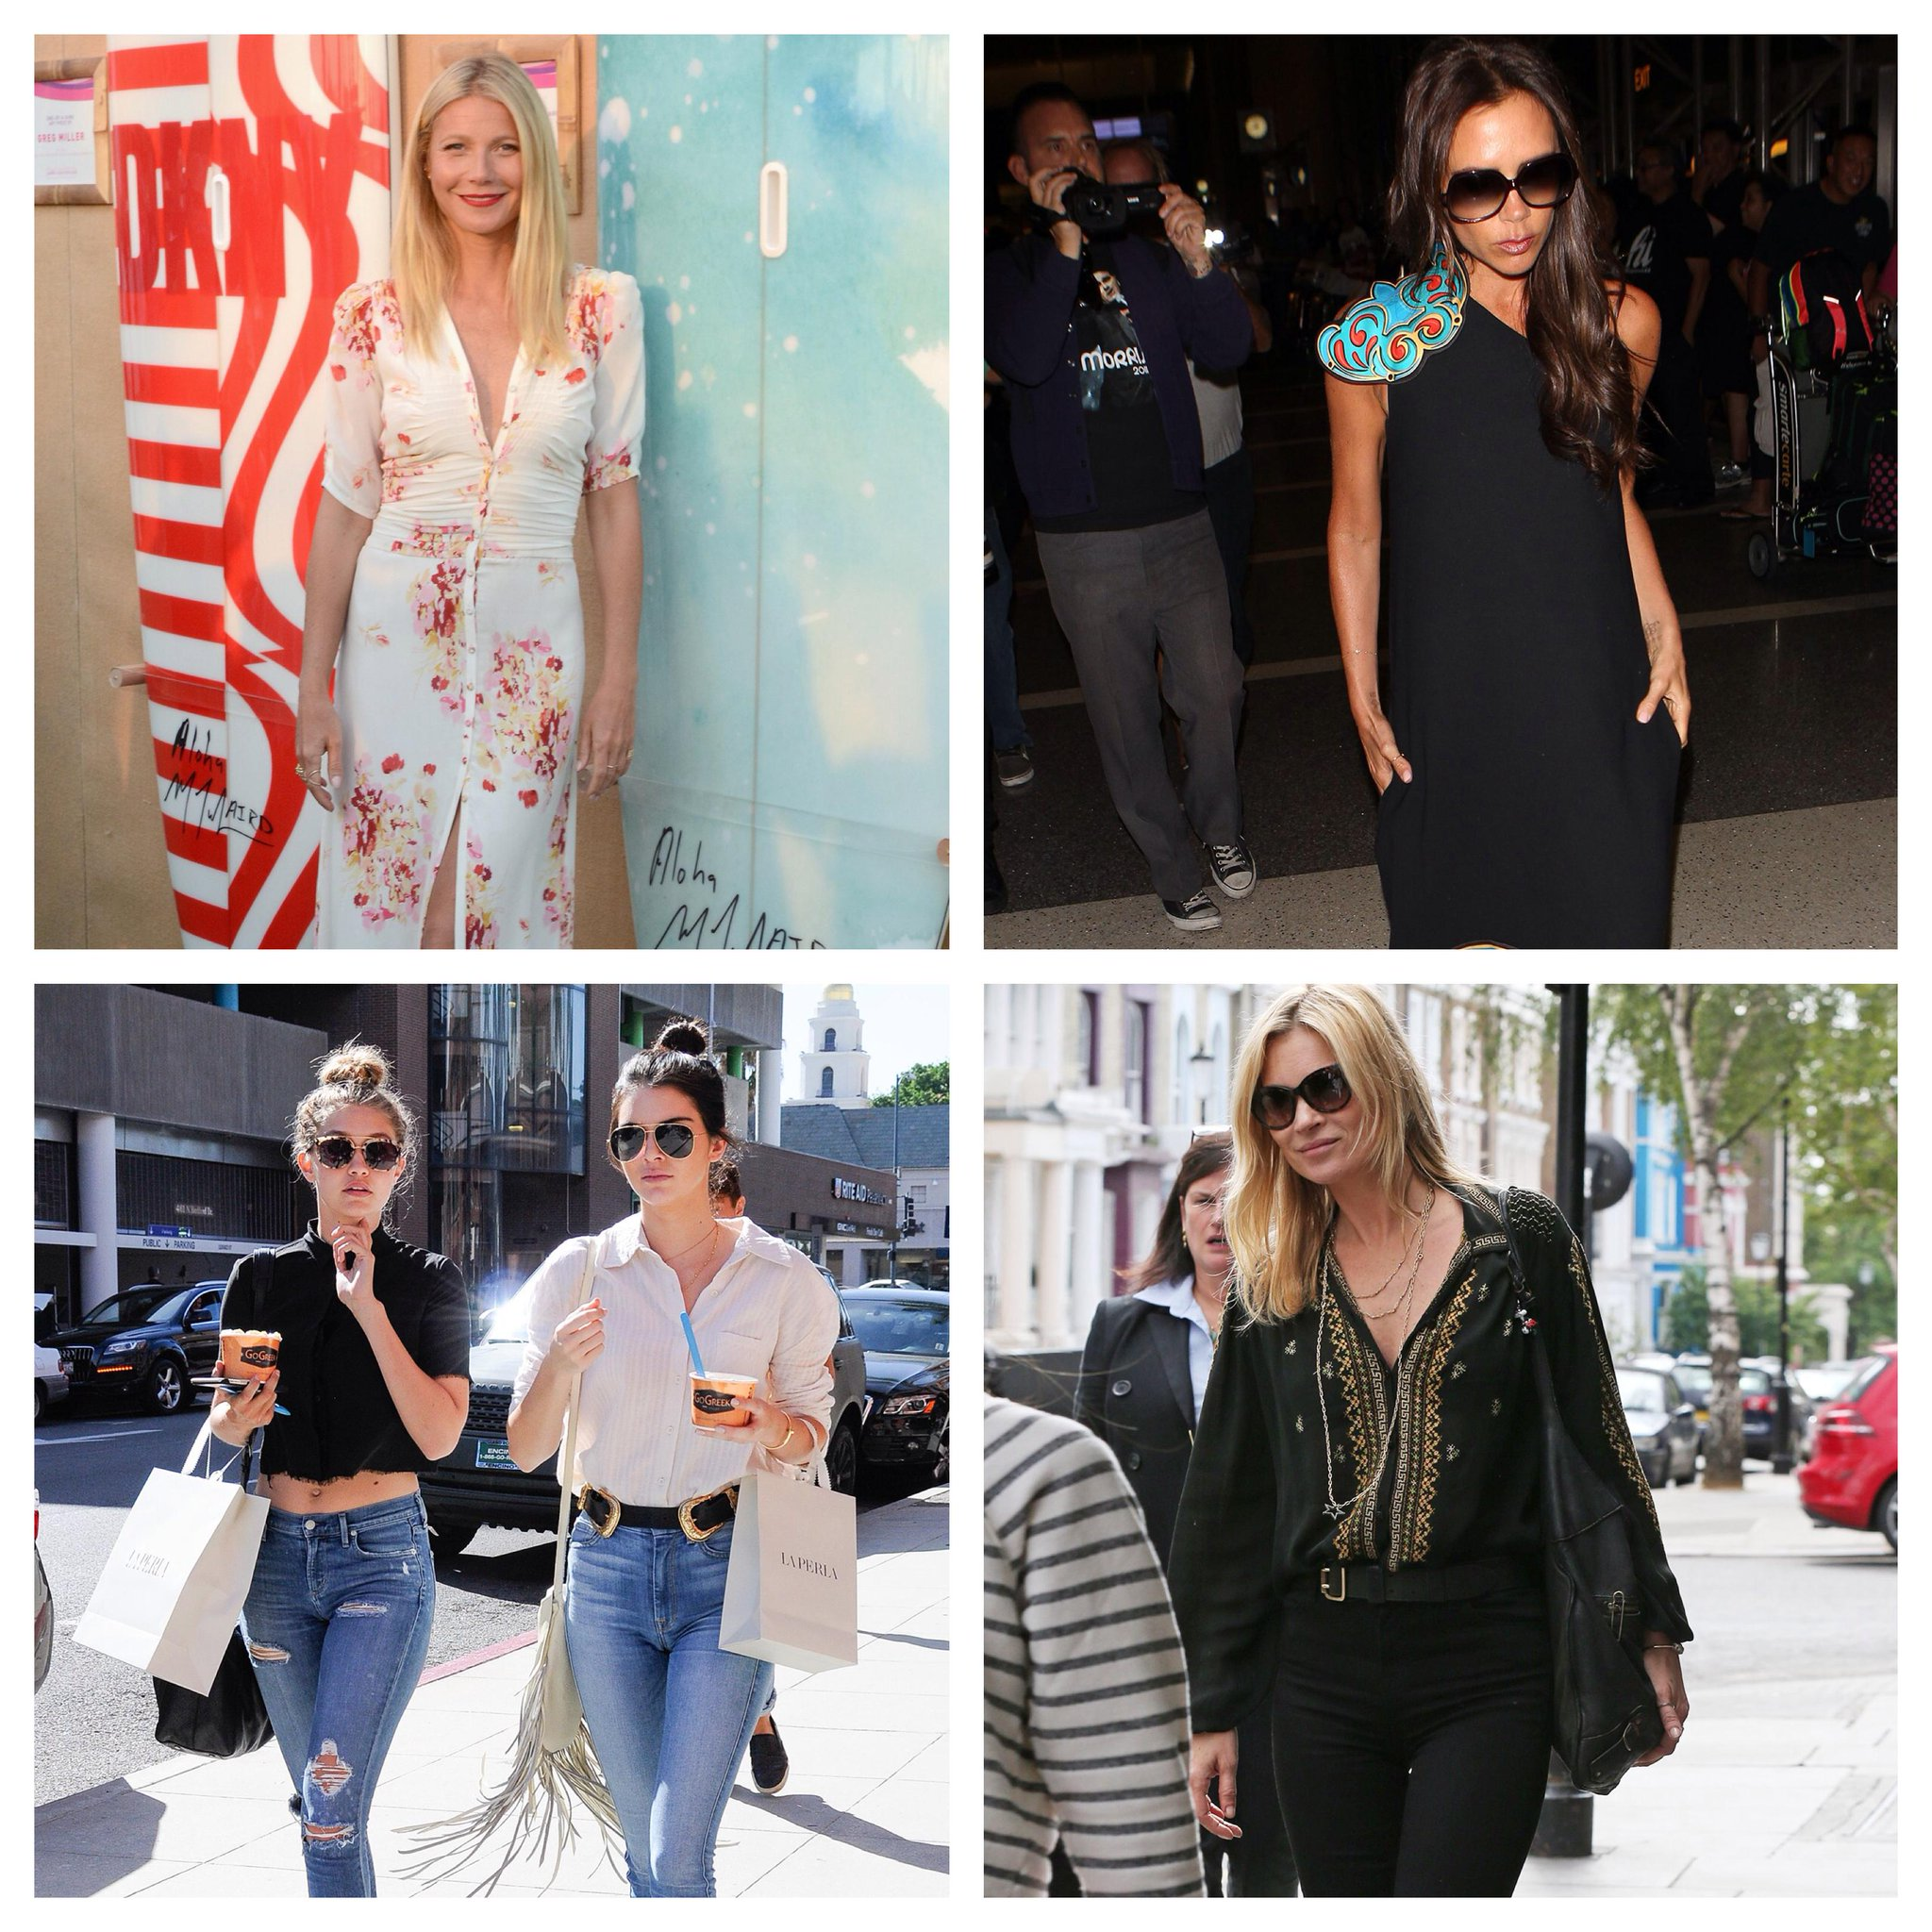 Gwyneth, Victoria, Kate, Kendall - see the most stylish stars of the weekend: http://t.co/jZaGNeuT7Z http://t.co/9kkWebyo3g